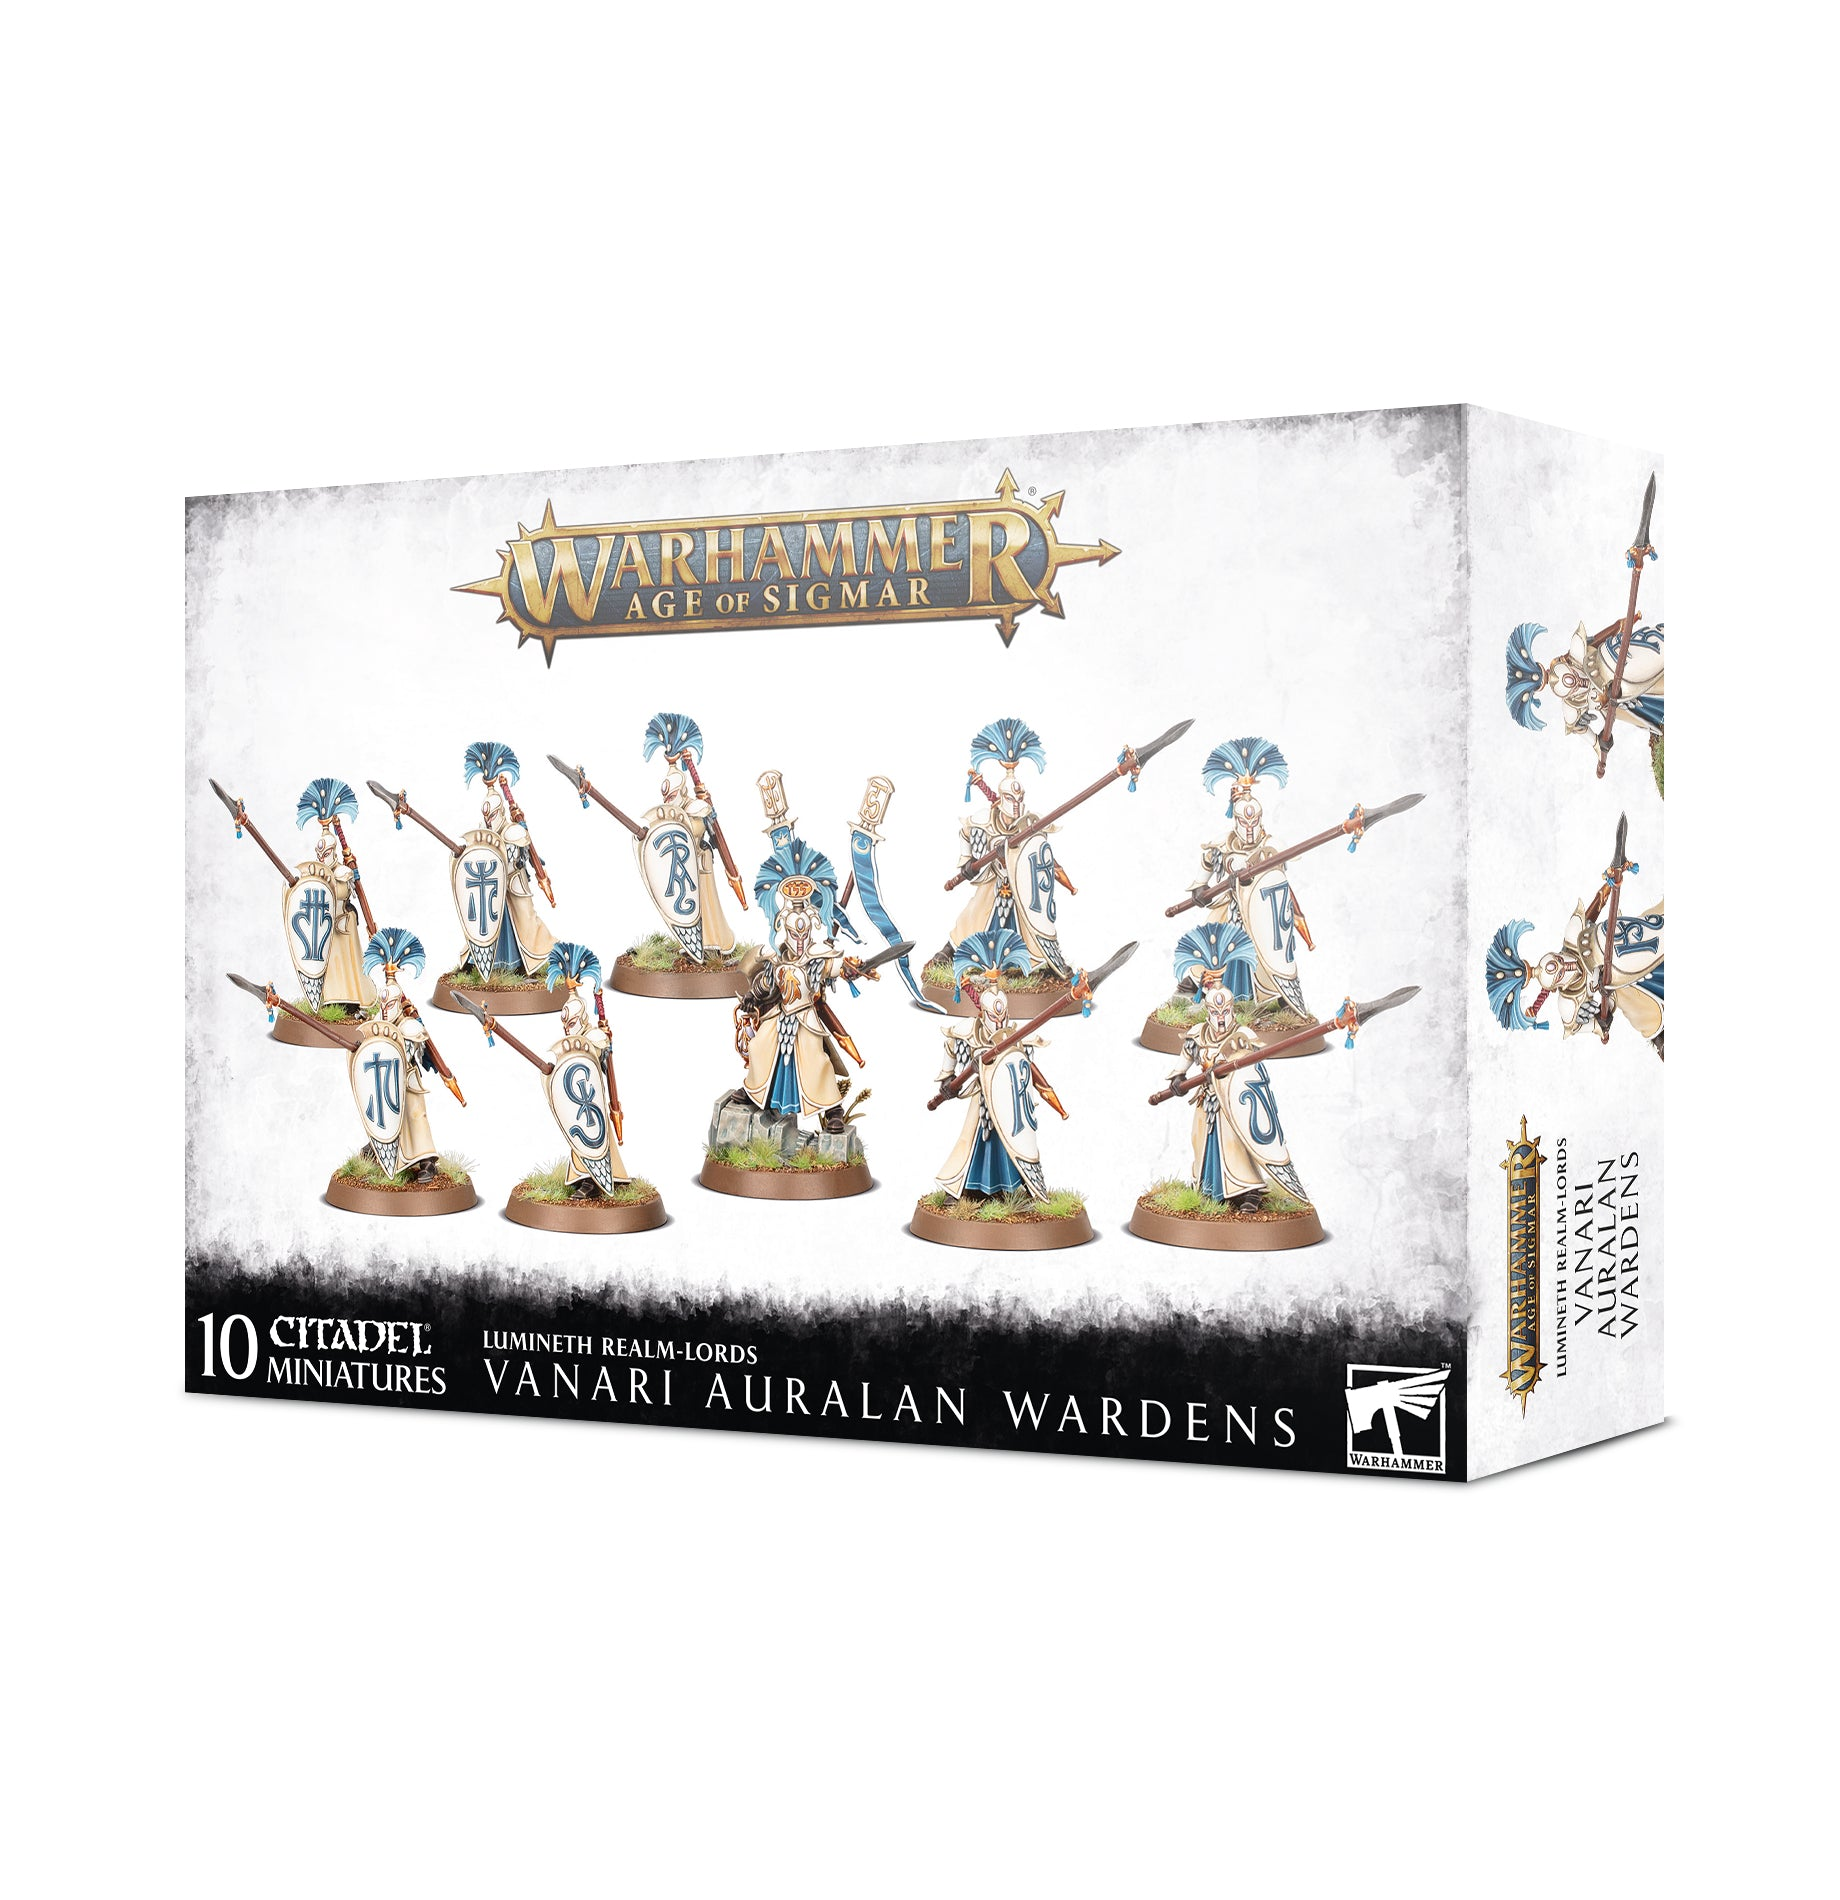 Lumineth Realm Lords Vanari Auralan Wardens Red Claw Gaming The battlefoam yuan yuan is probably the rarest of all the limited editions. red claw gaming